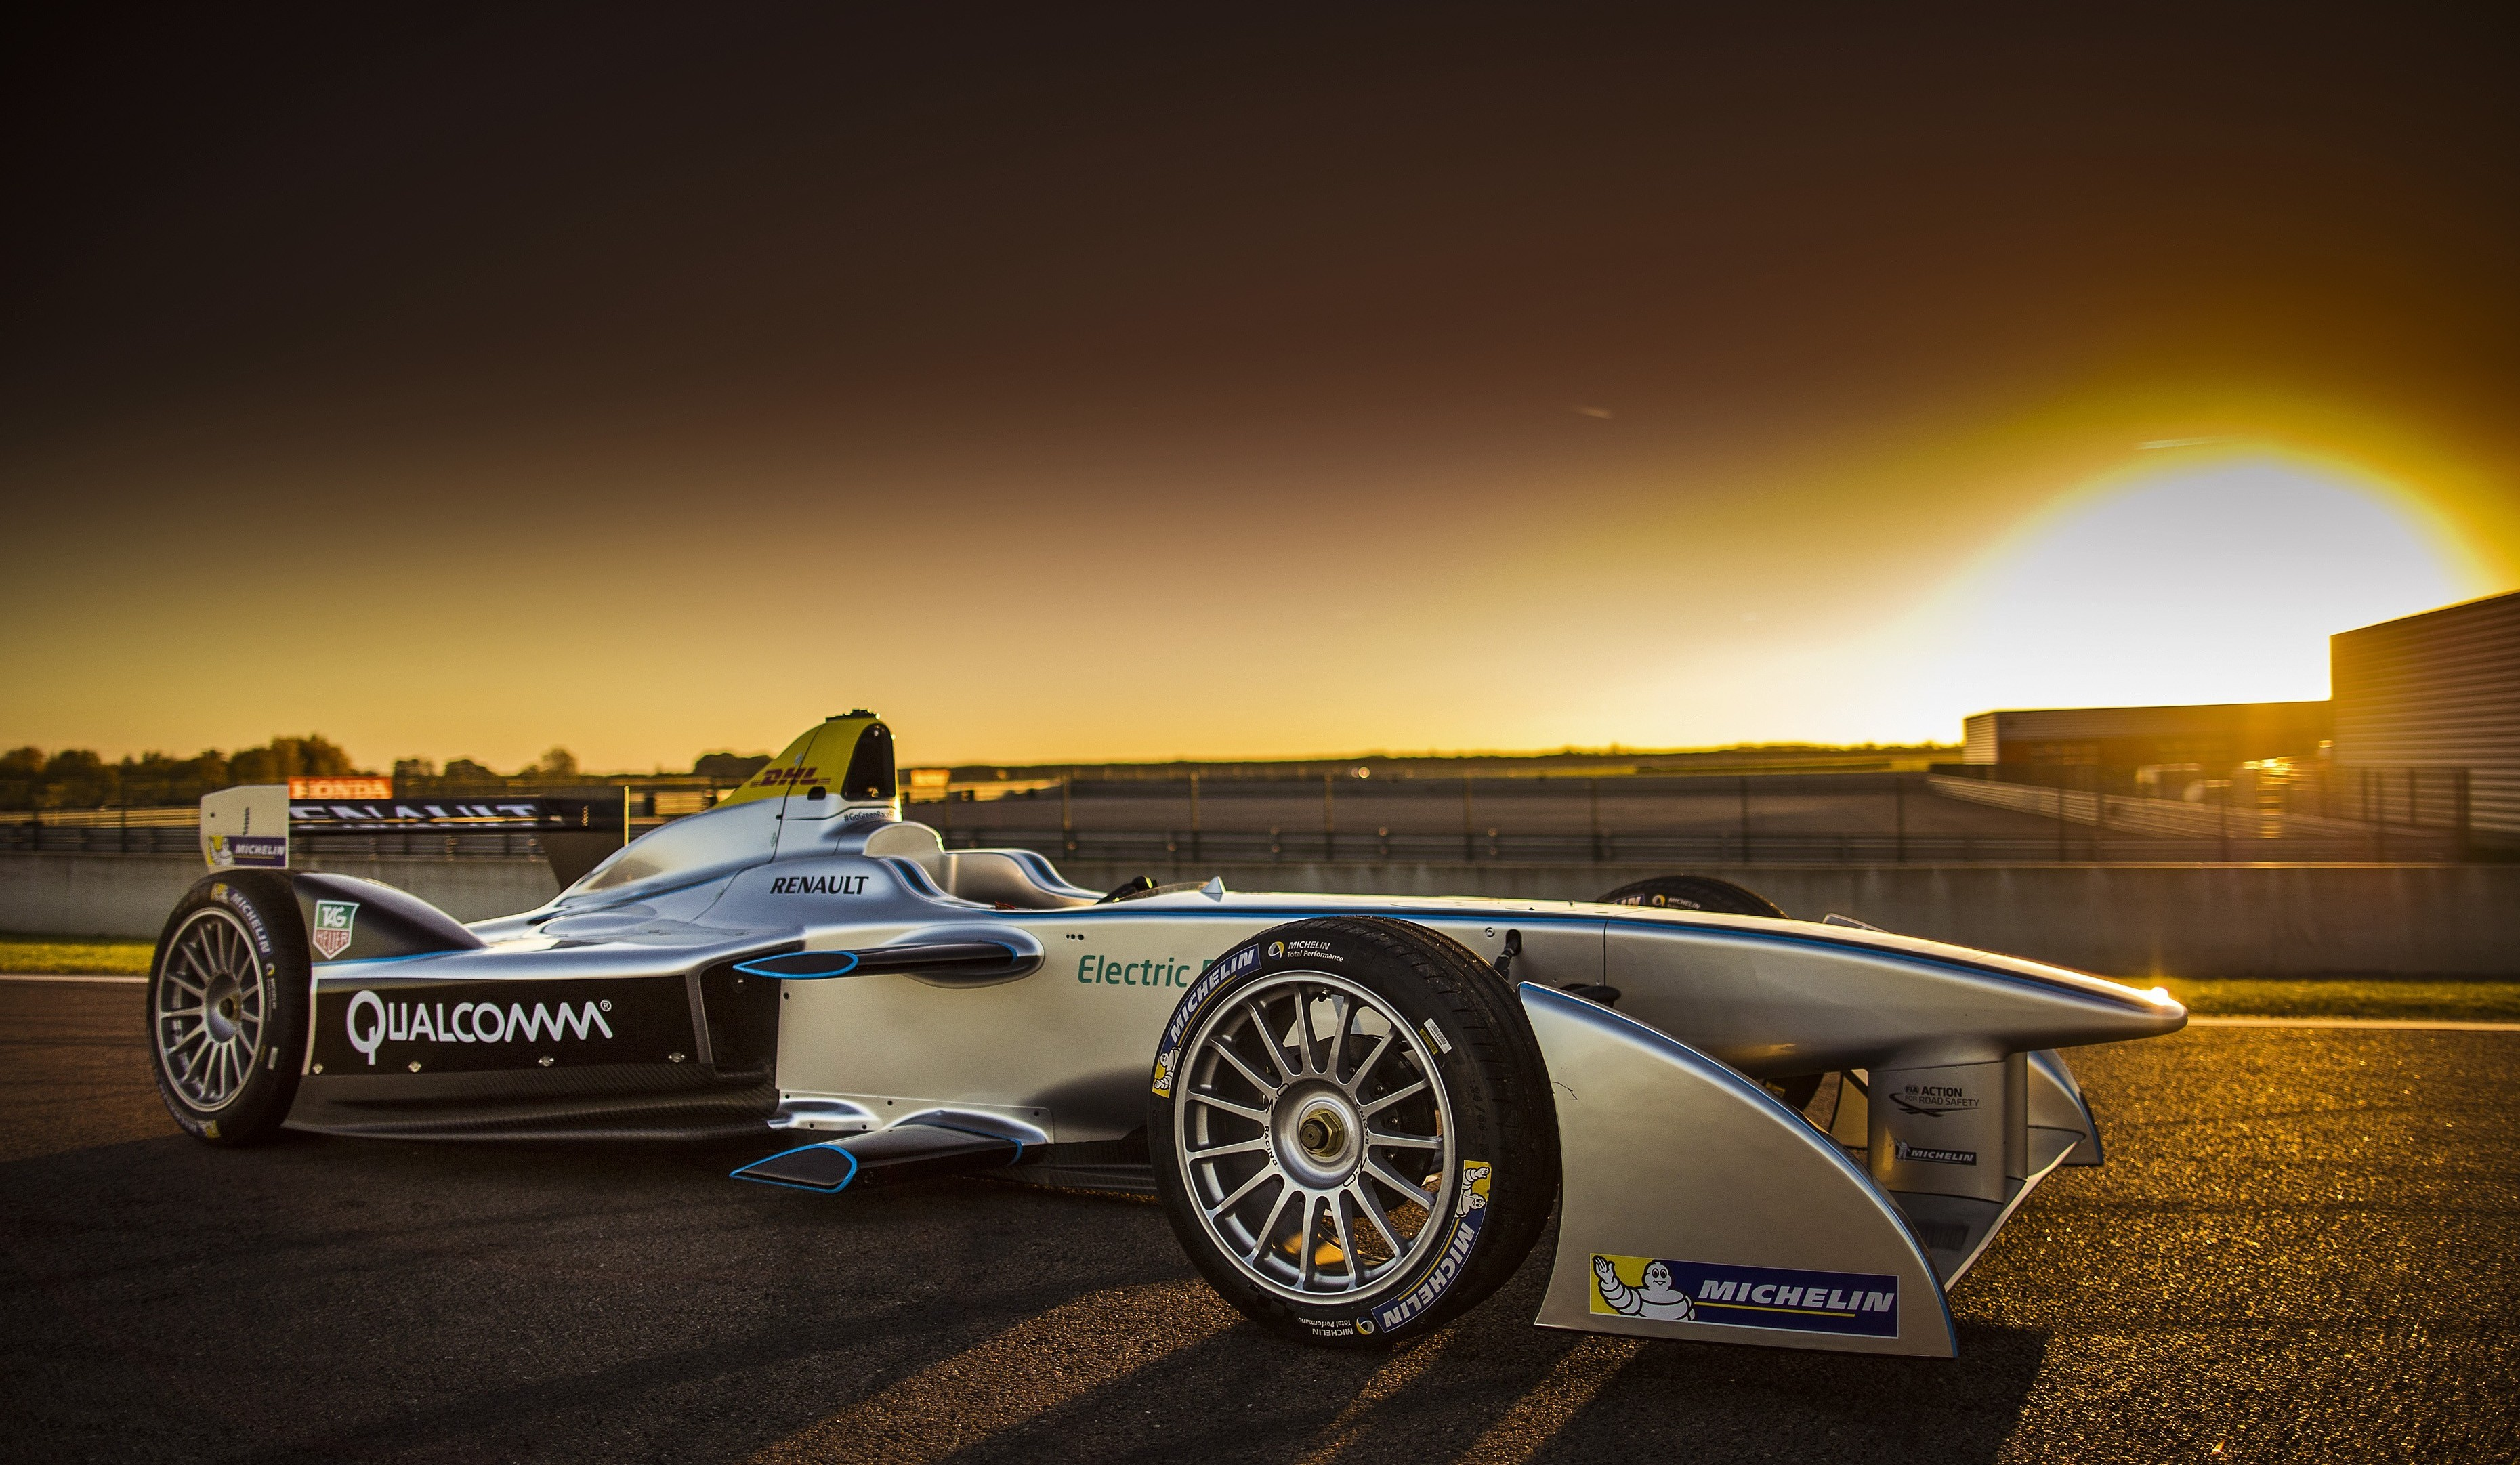 Wallpaper Fia Formula E 2015 Sports Car Electric Cars